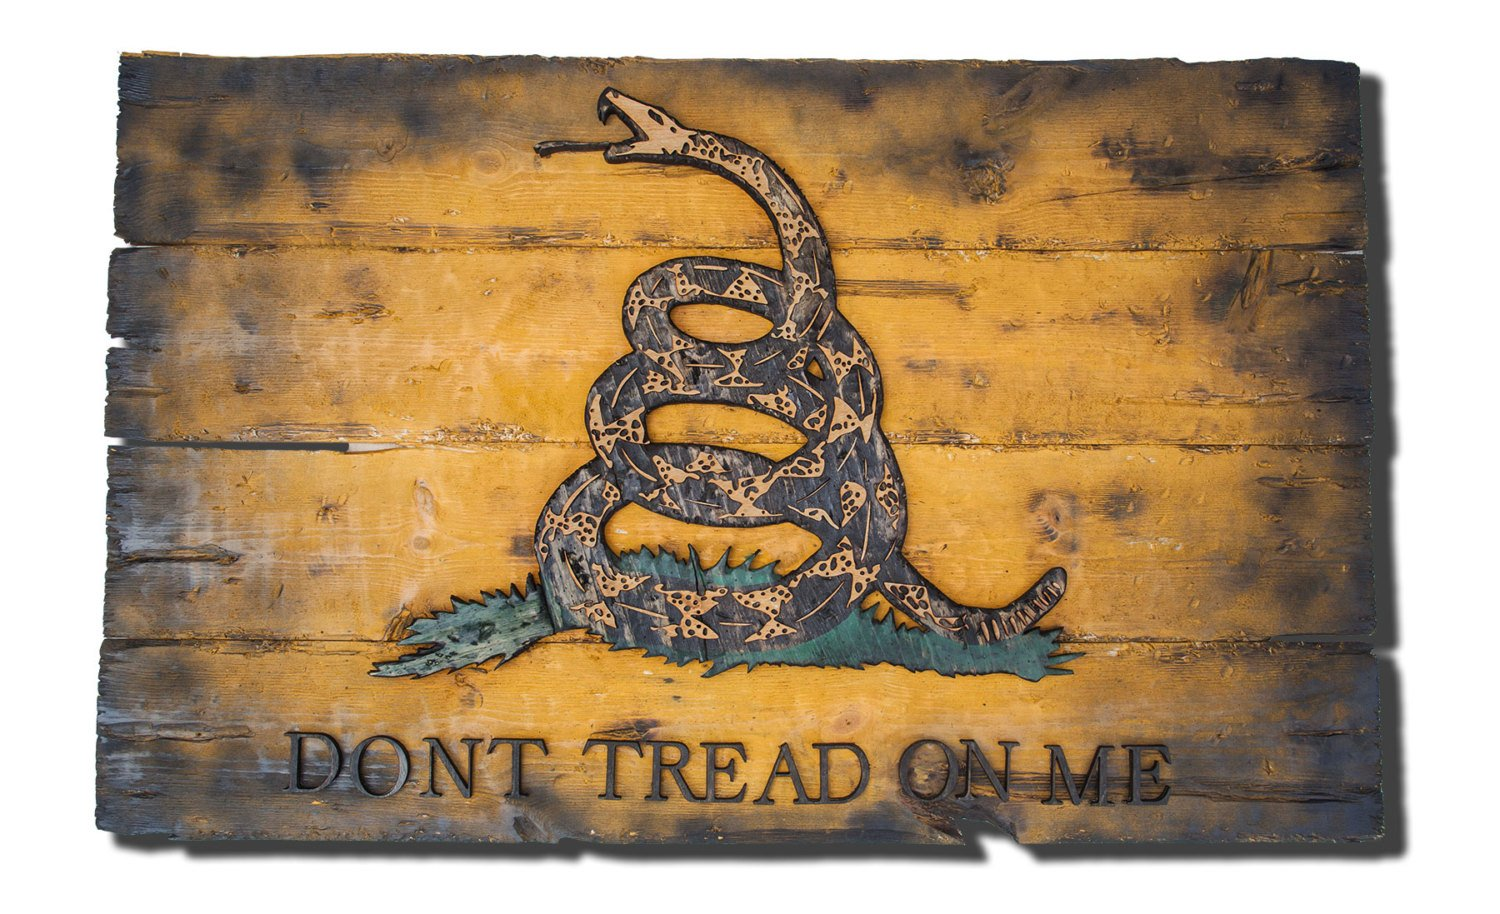 Gadsden Flag Don T Tread On Me Limited Edition Weathered Wood One Of A Kind Vintage Art Distressed Weathered Recycled Snake Yellow Handmade